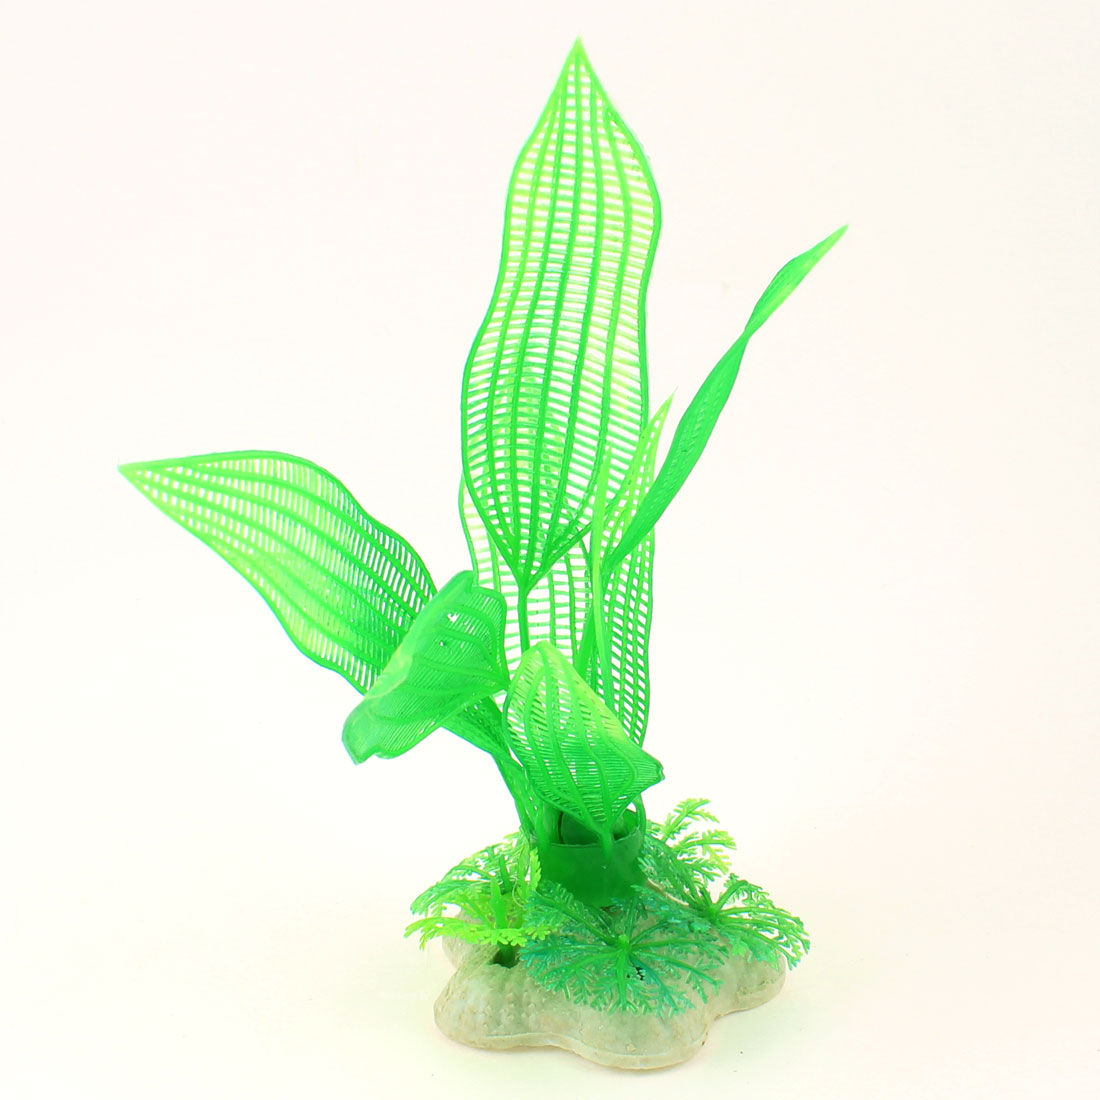 "6.3"" Height Mesh Pattern Plastic Aquatic Green Plant for Aquarium"